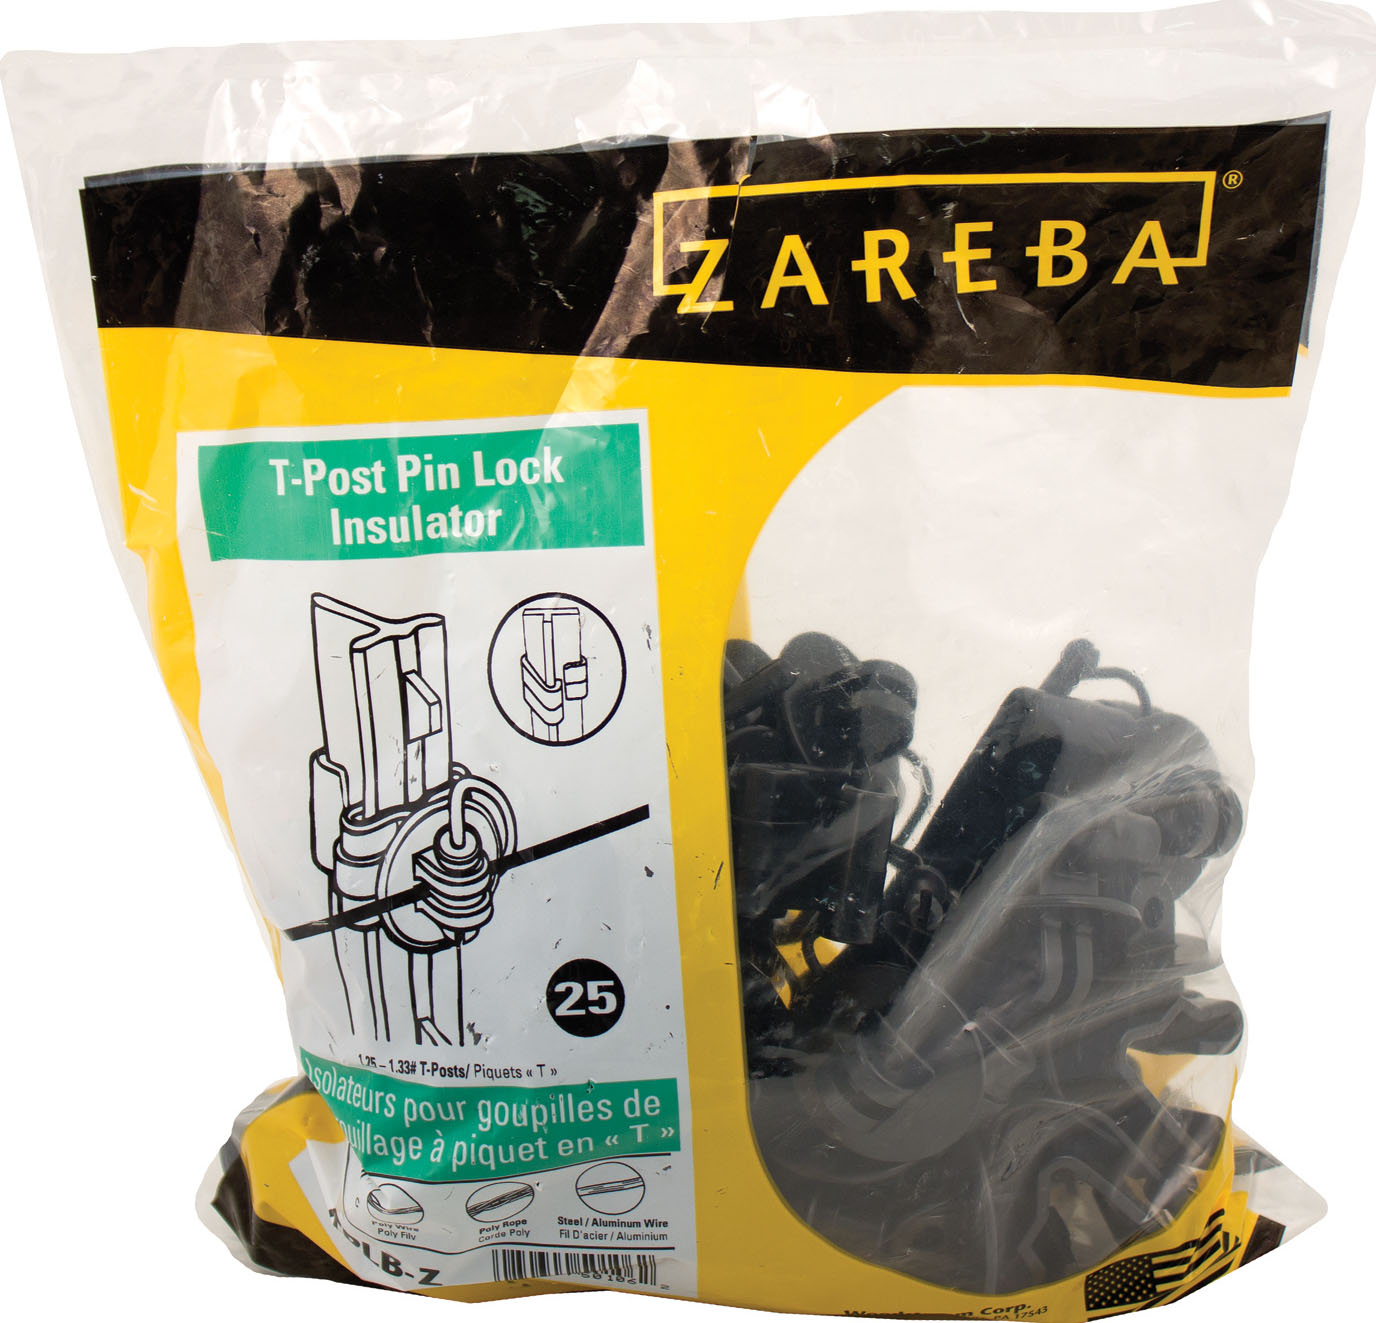 Zareba Black Pin-Lock T-Post Insulator